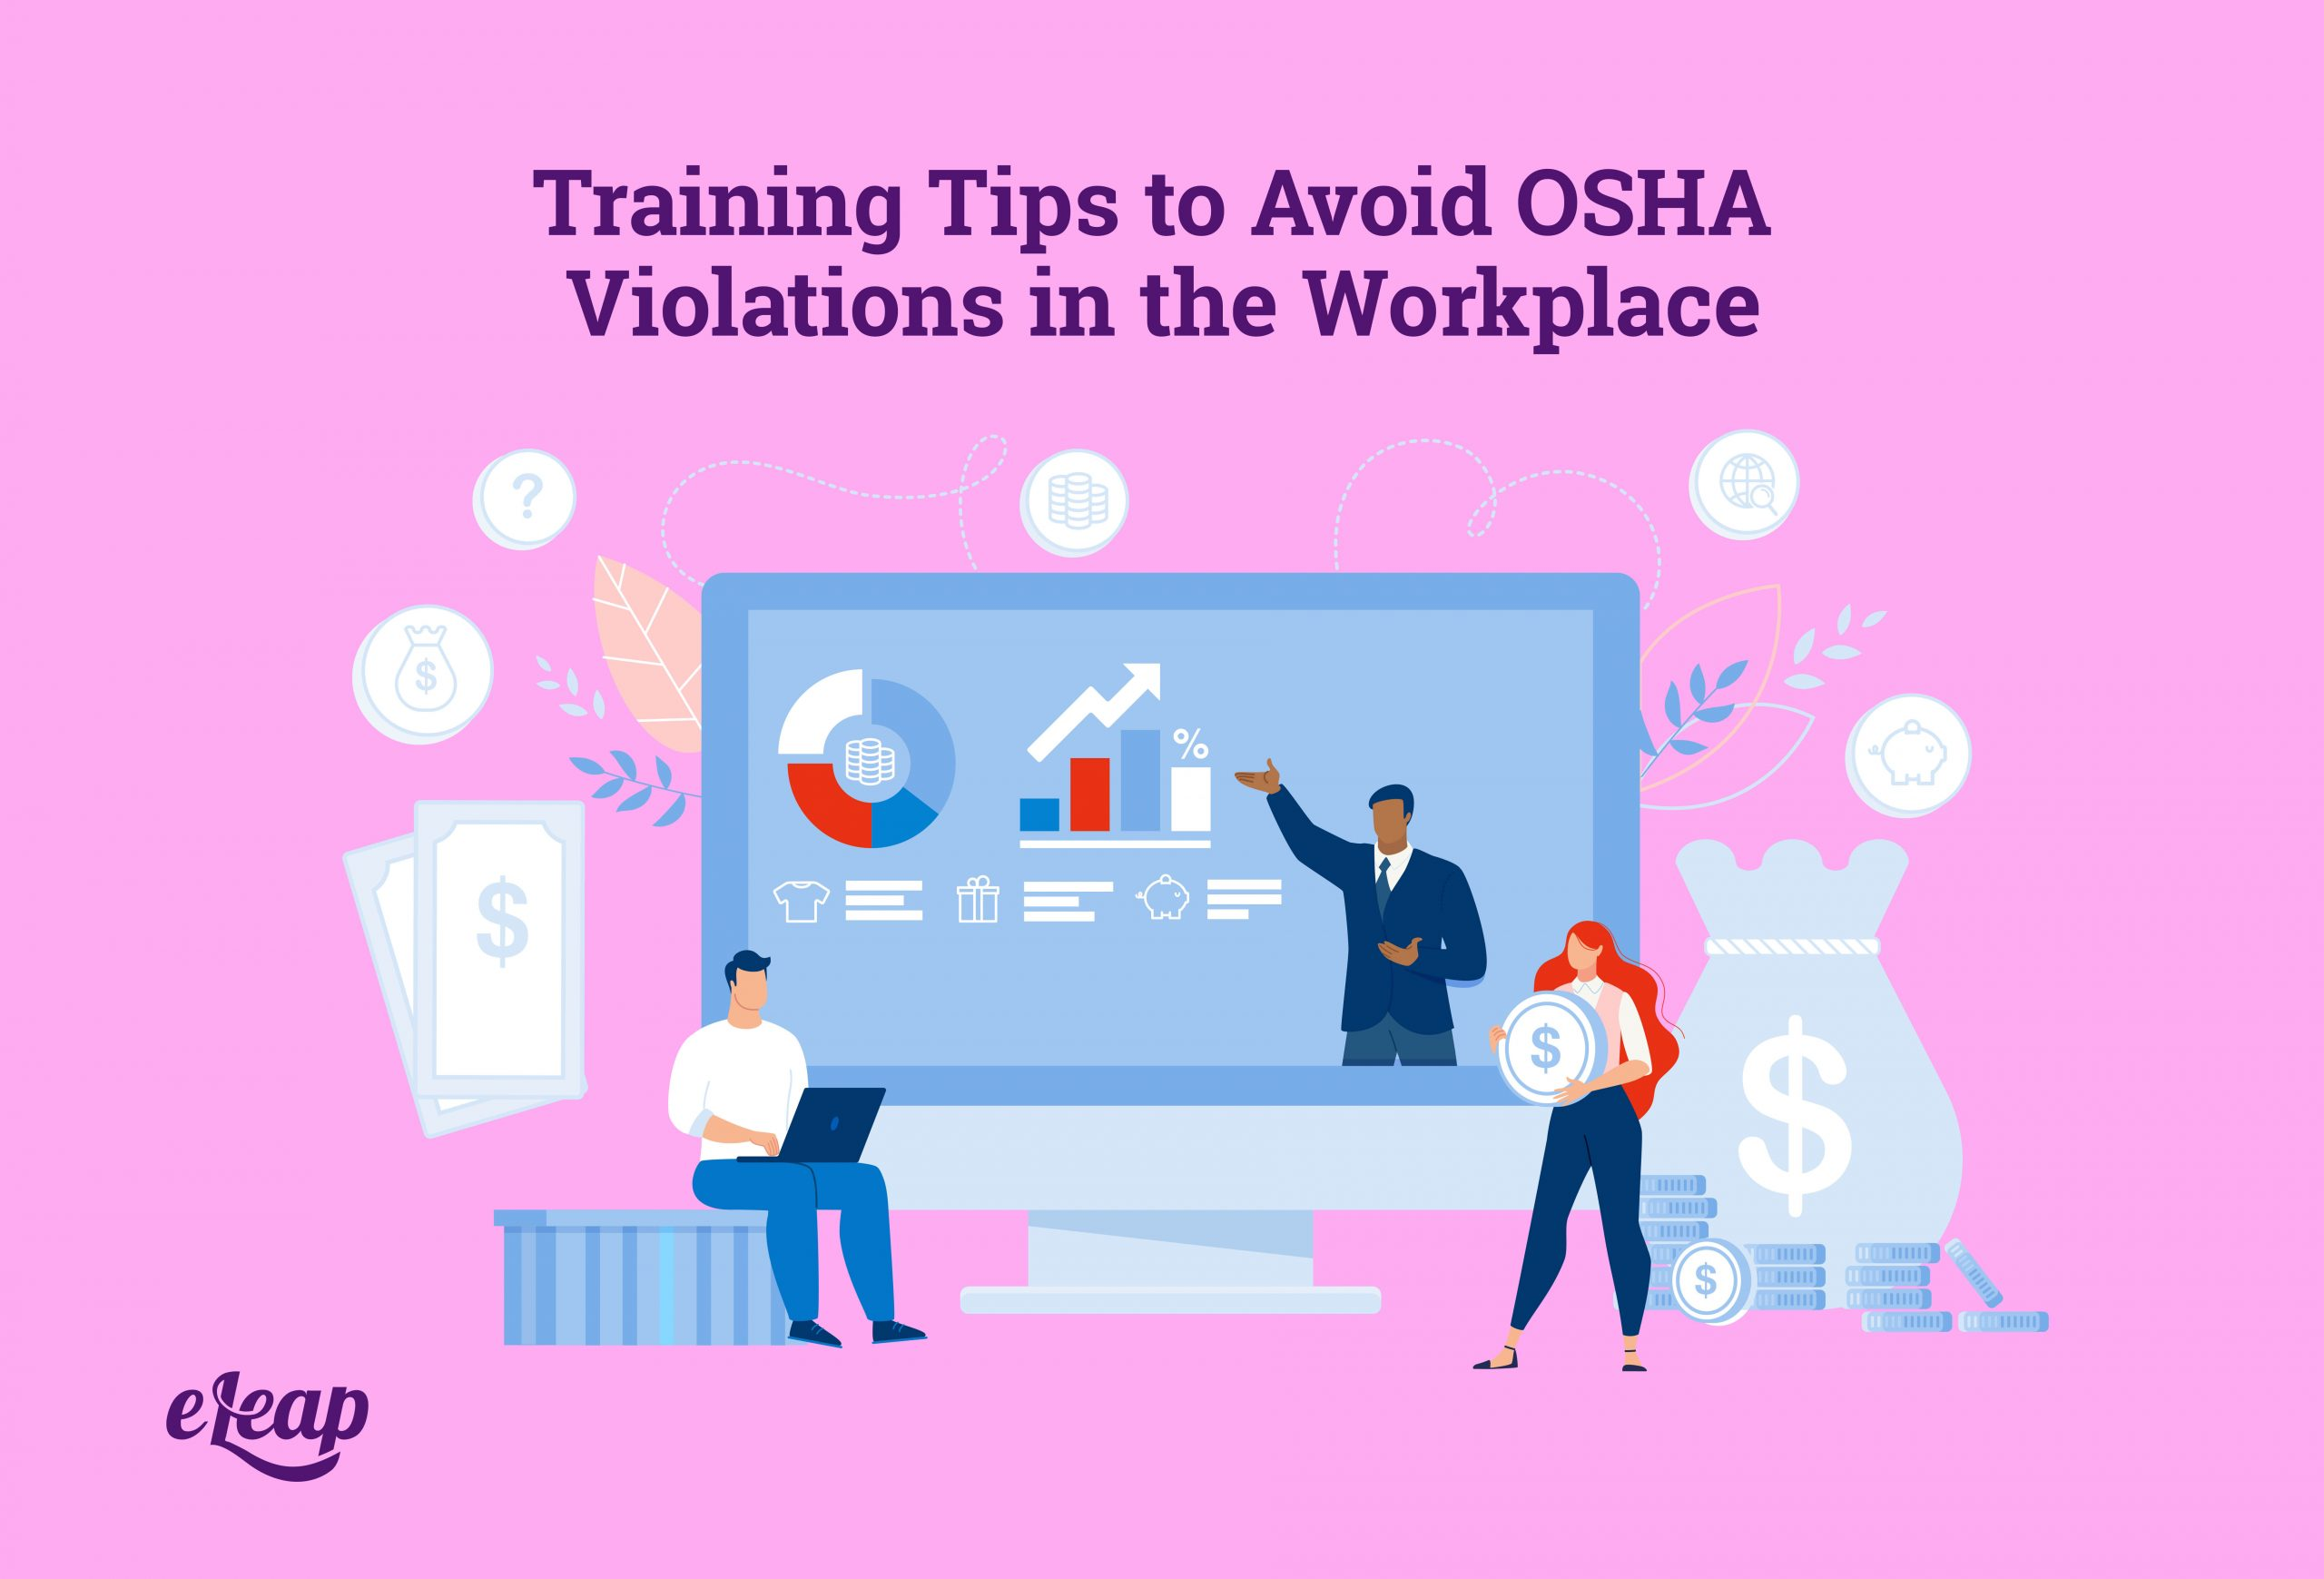 Training Tips to Avoid OSHA Violations in the Workplace